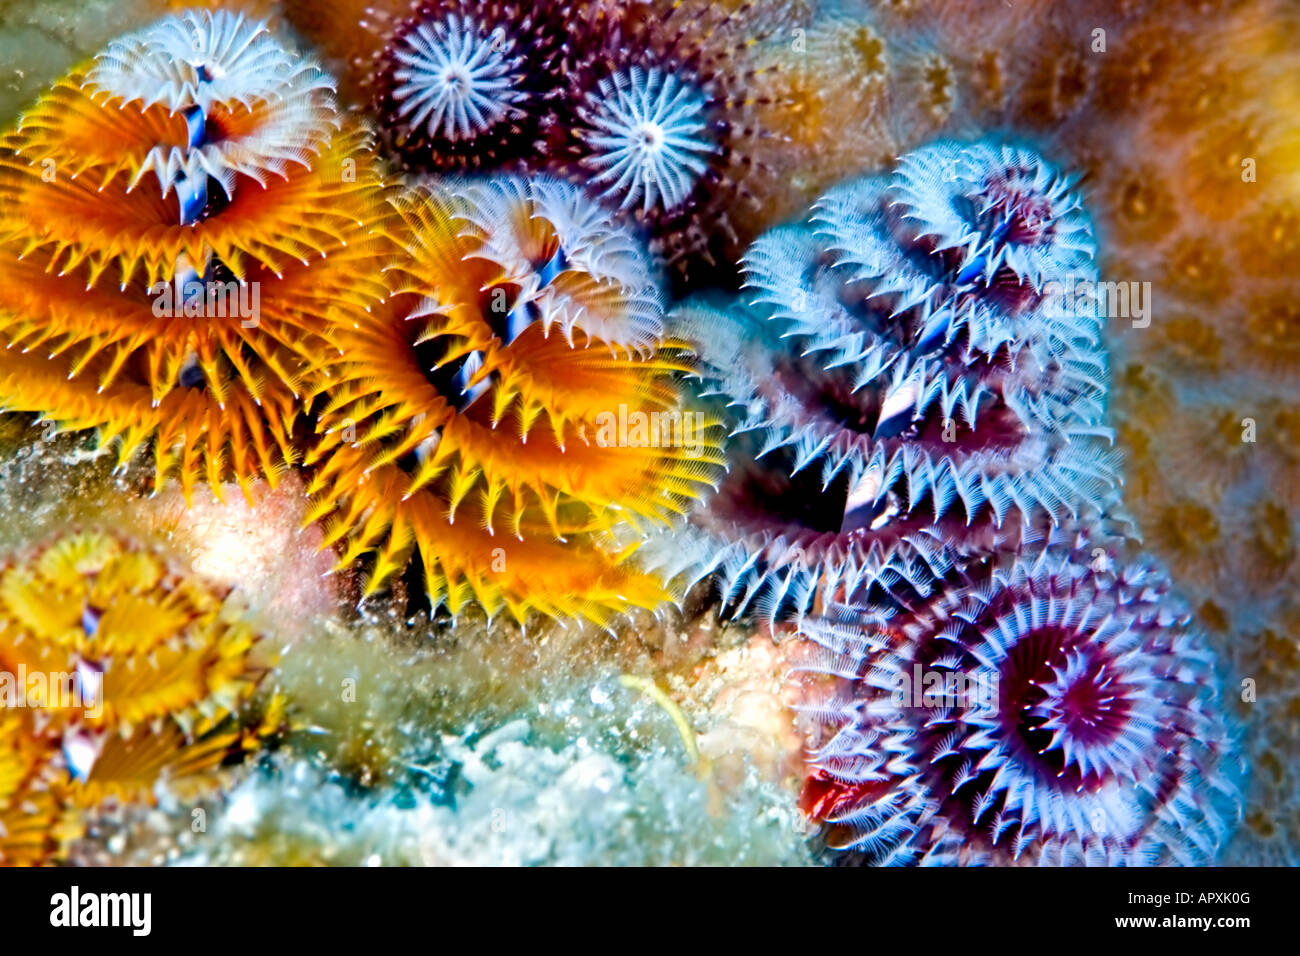 These Tiny Christmas Tree Worms Exhibit Diverse Colors At Their Site Stock Photo Alamy